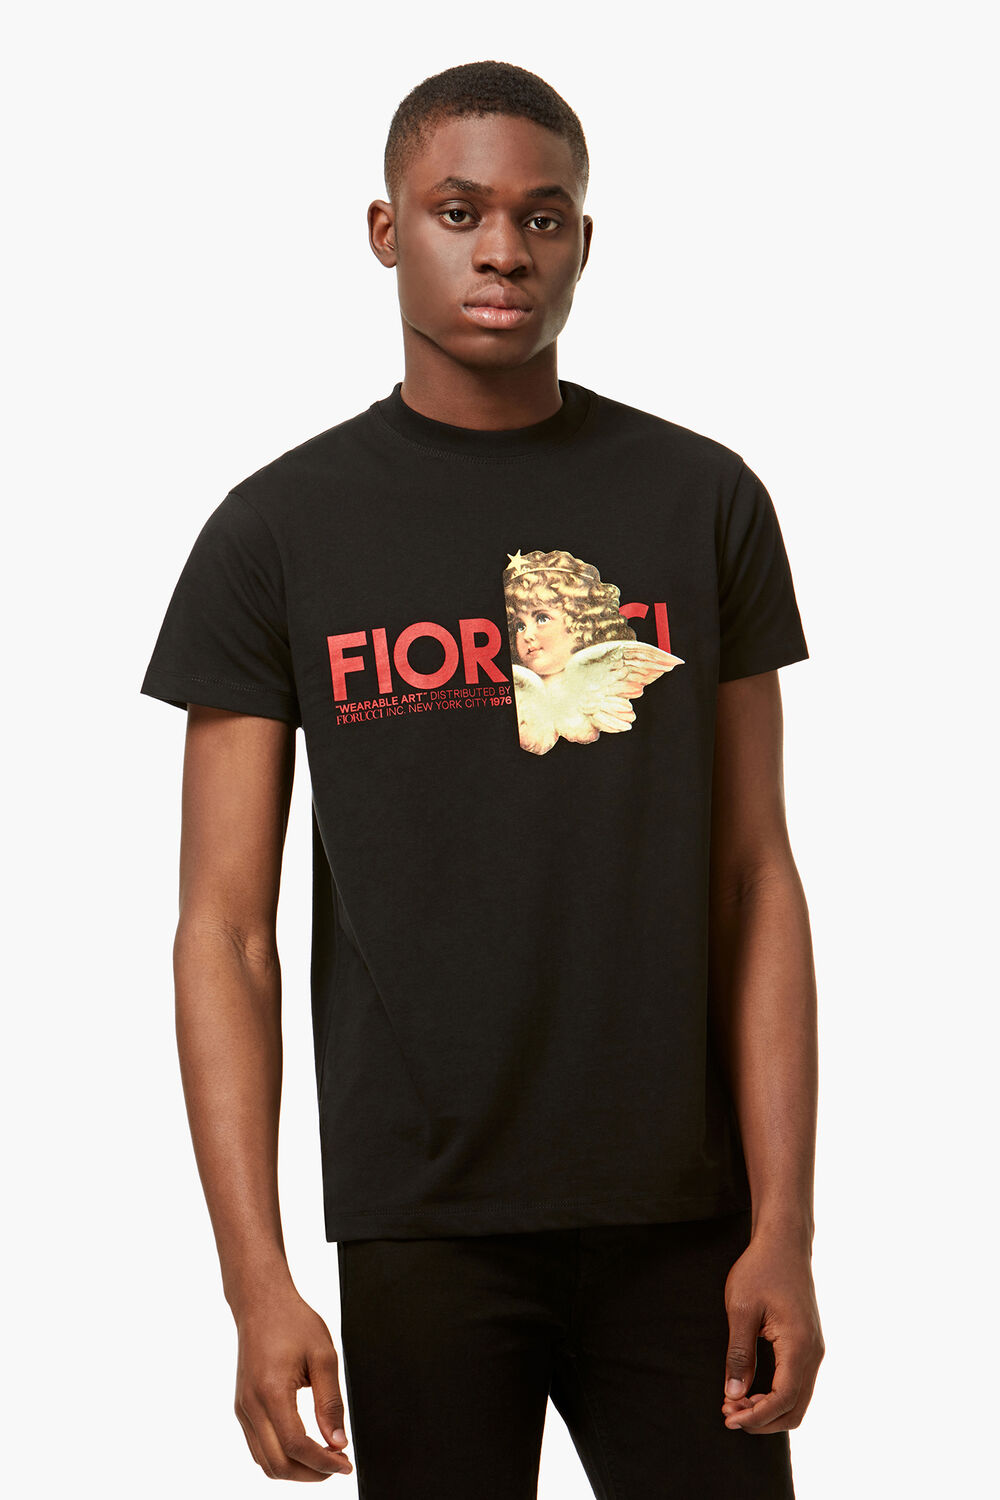 Fiorangels T-Shirt Black